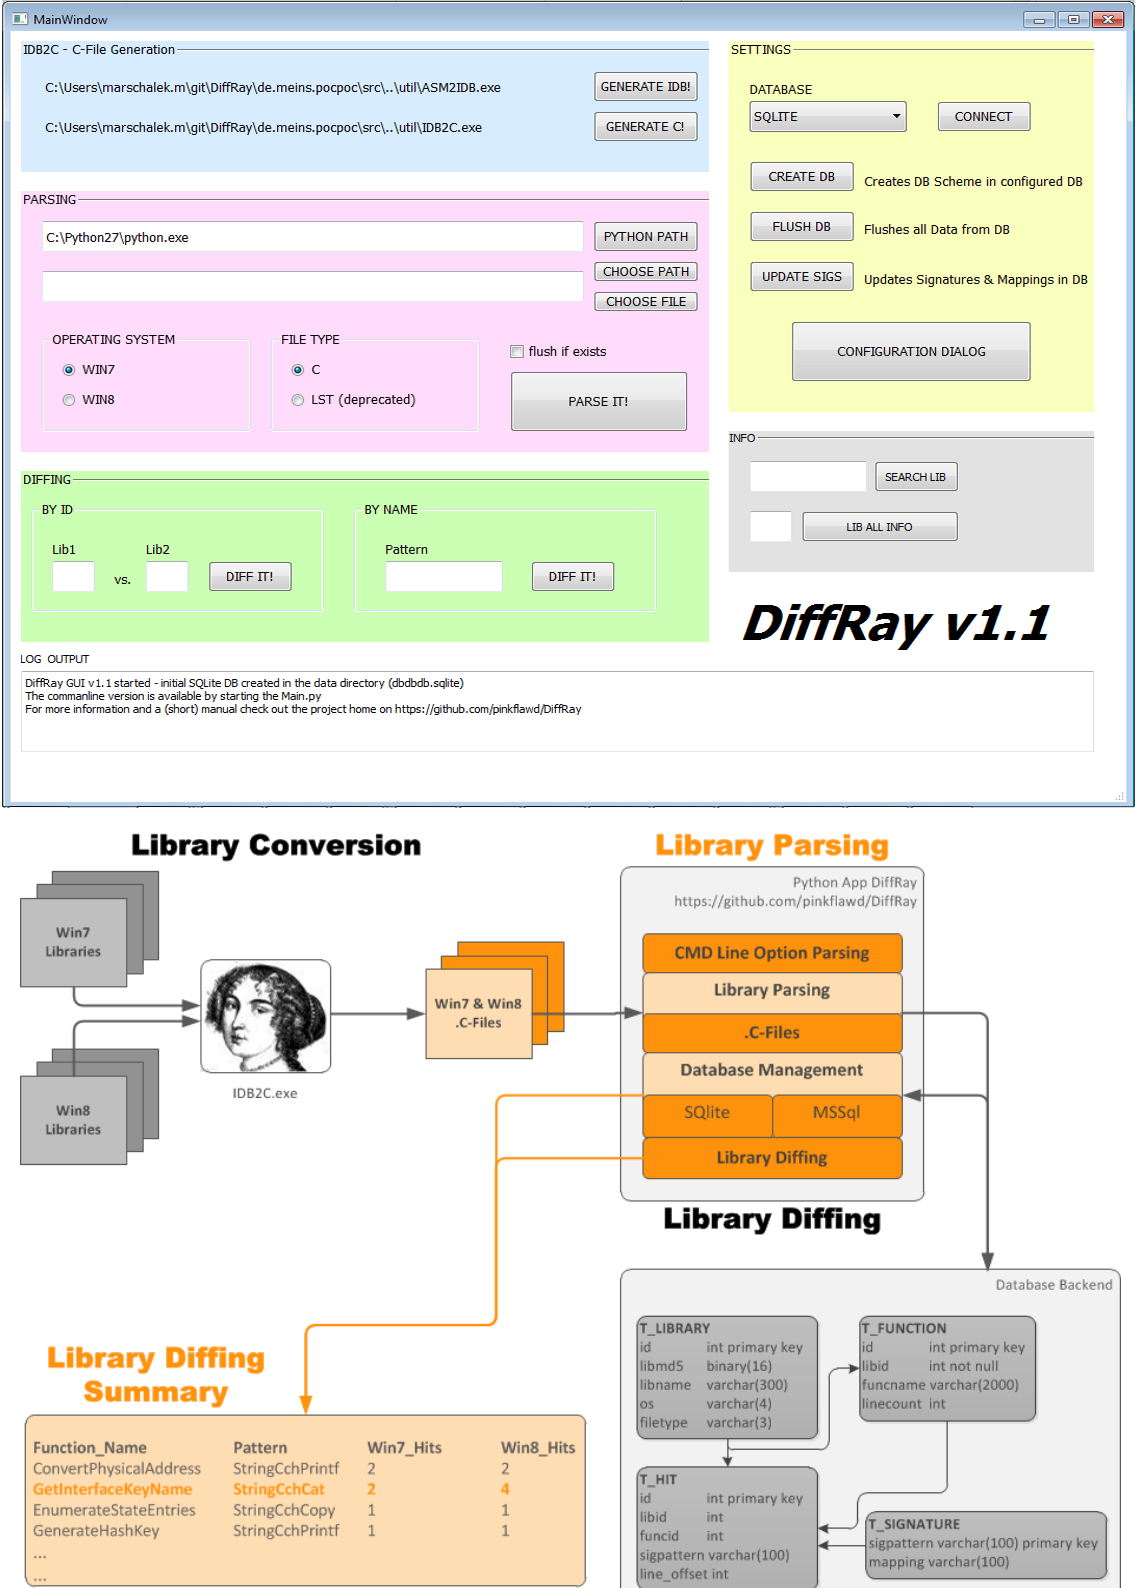 DiffRay GUI and flow chart